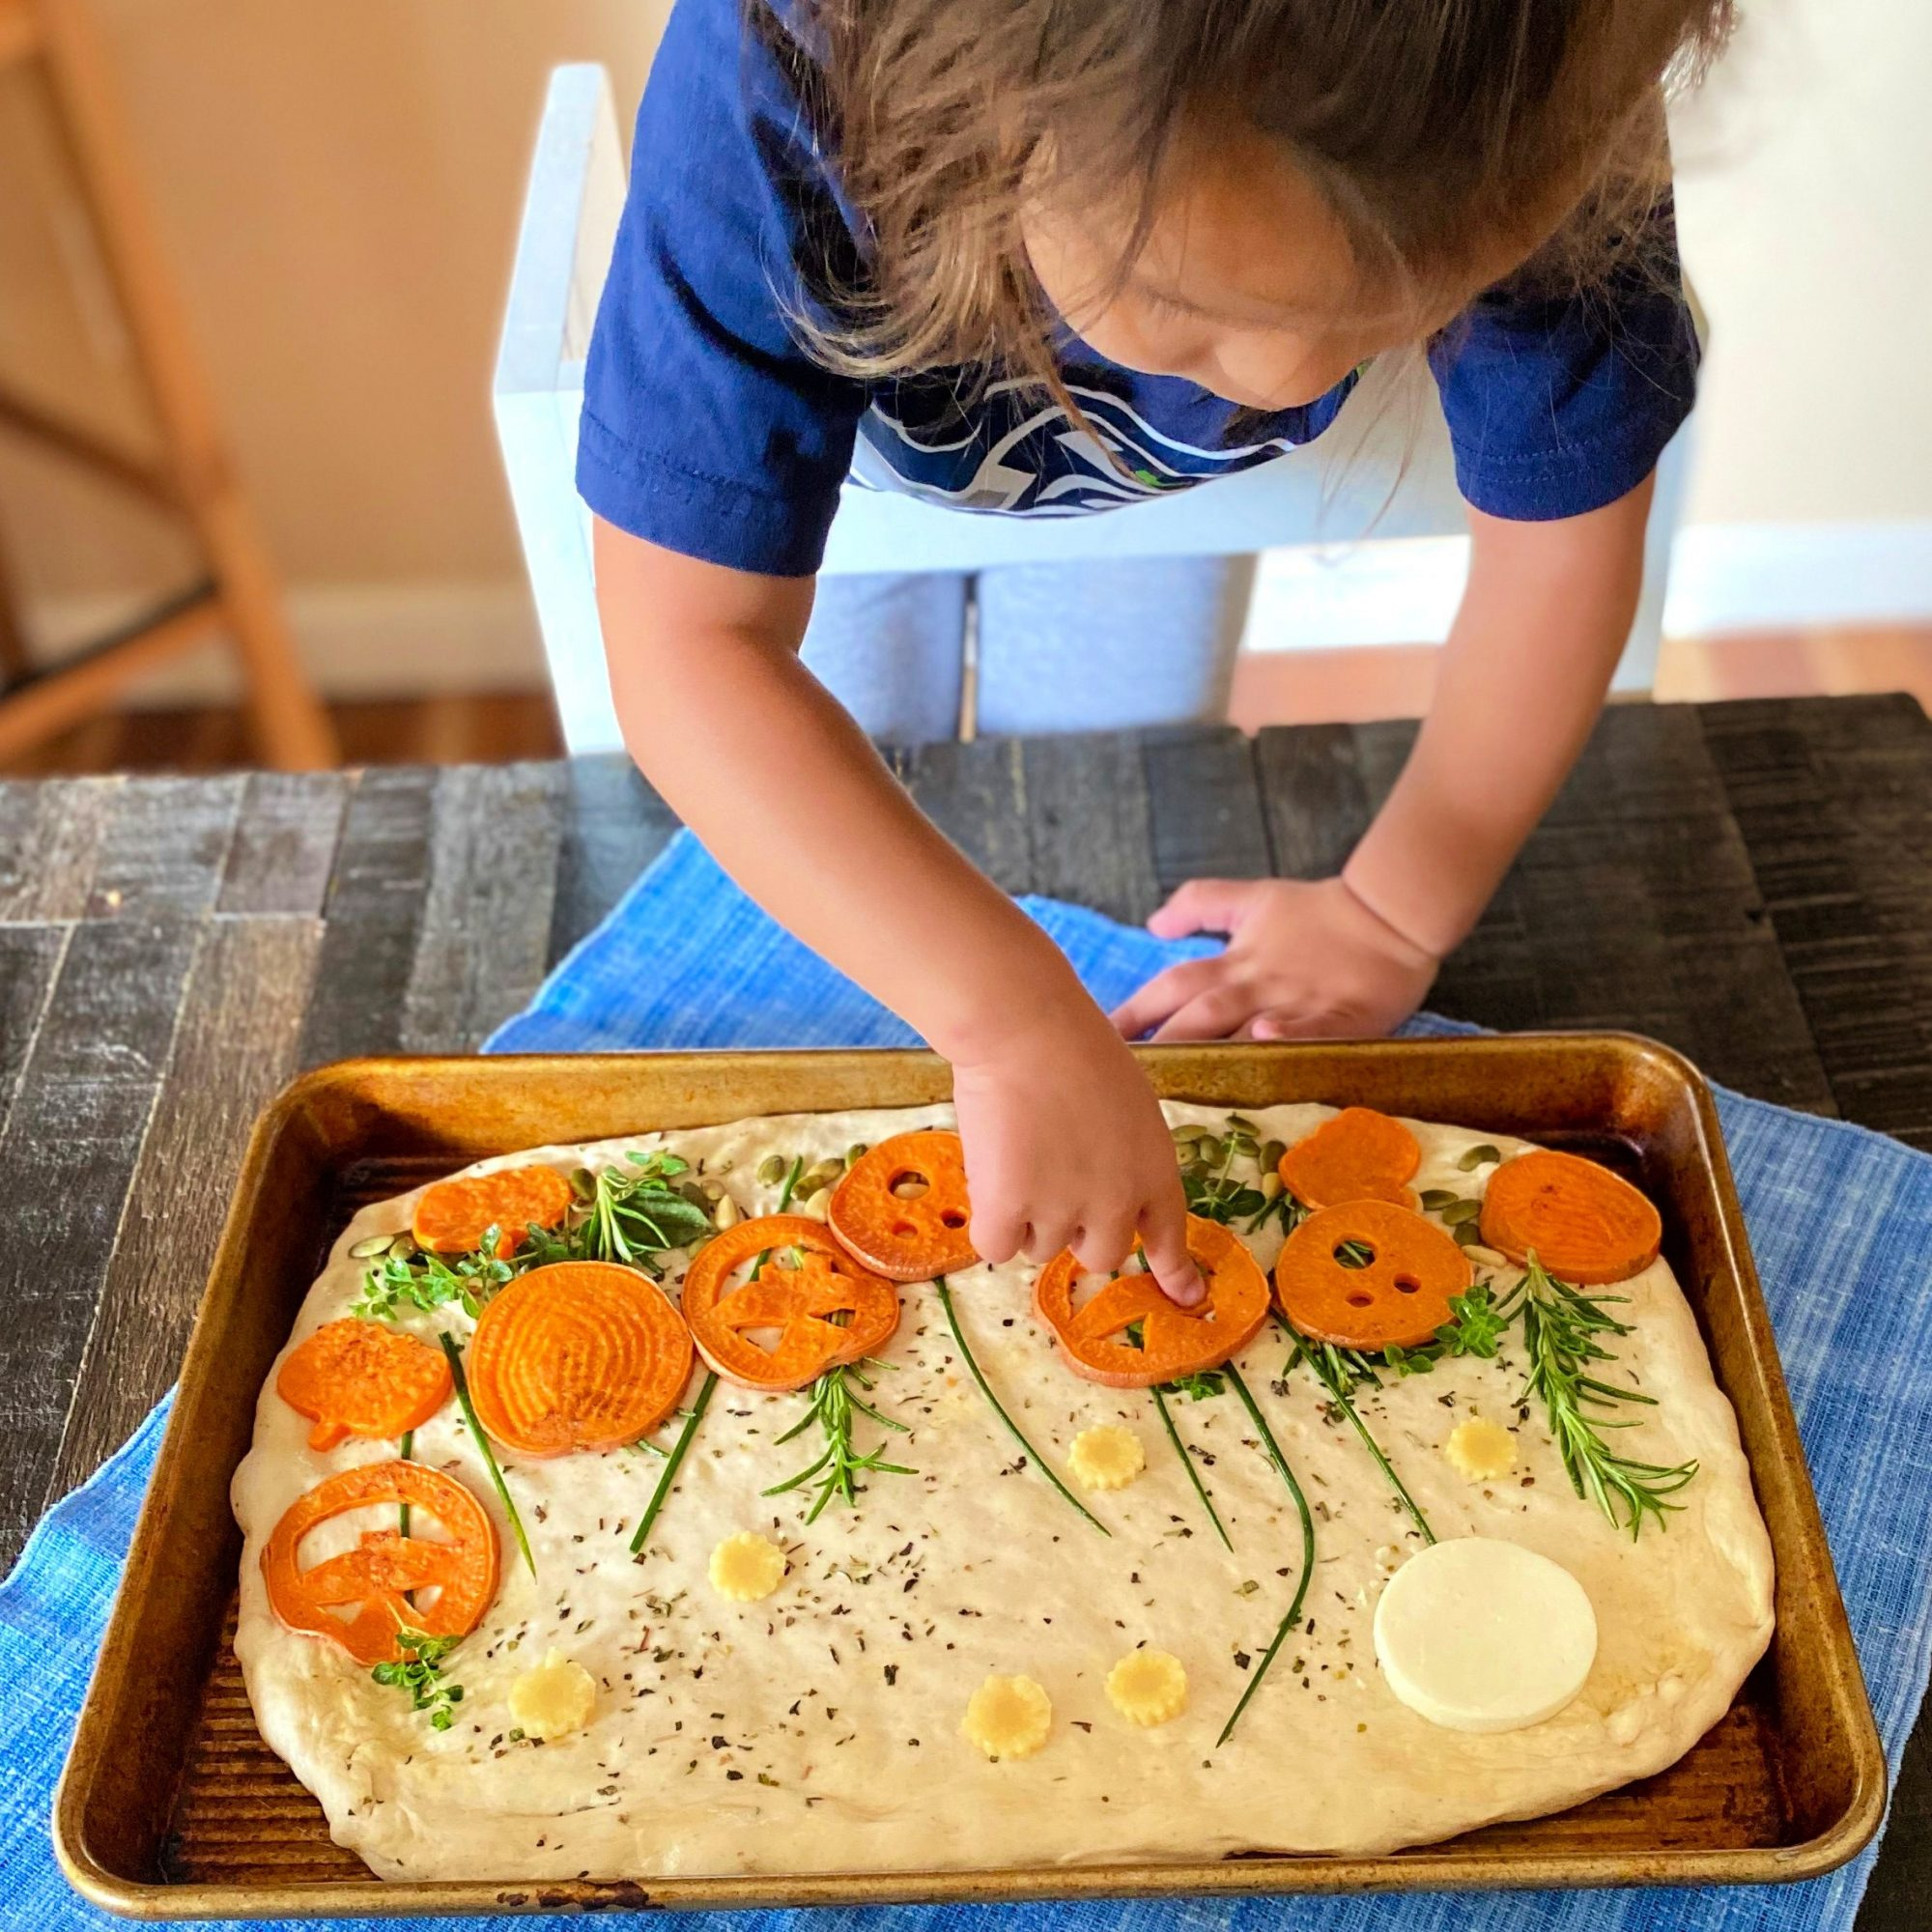 child decorating pumpkin patch focaccia with yam pumpkin faces and herbs